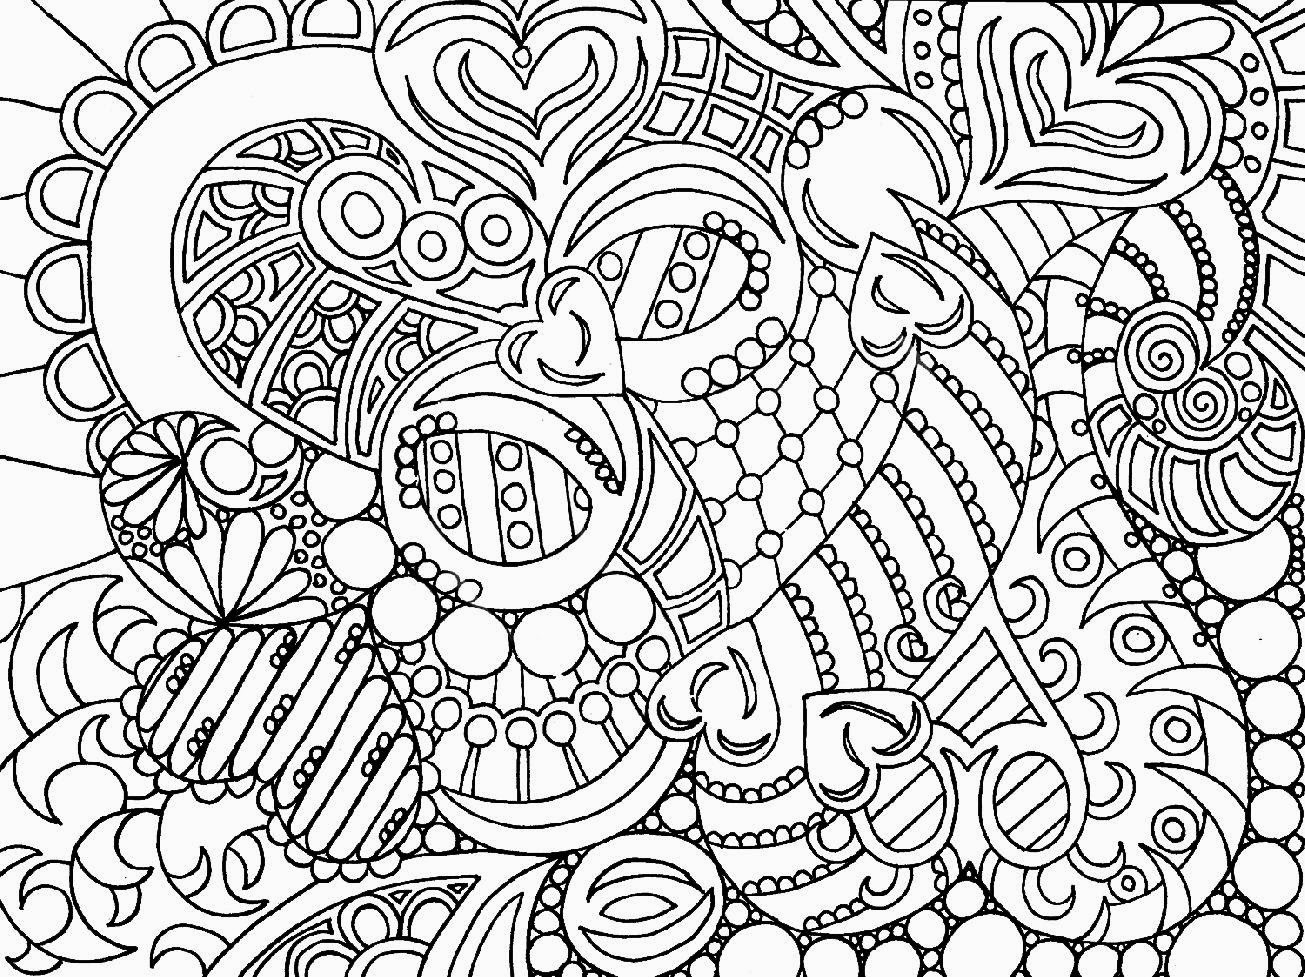 Adult Coloring Sheets Free Coloring Sheet Free Printable Coloring Pages Adults